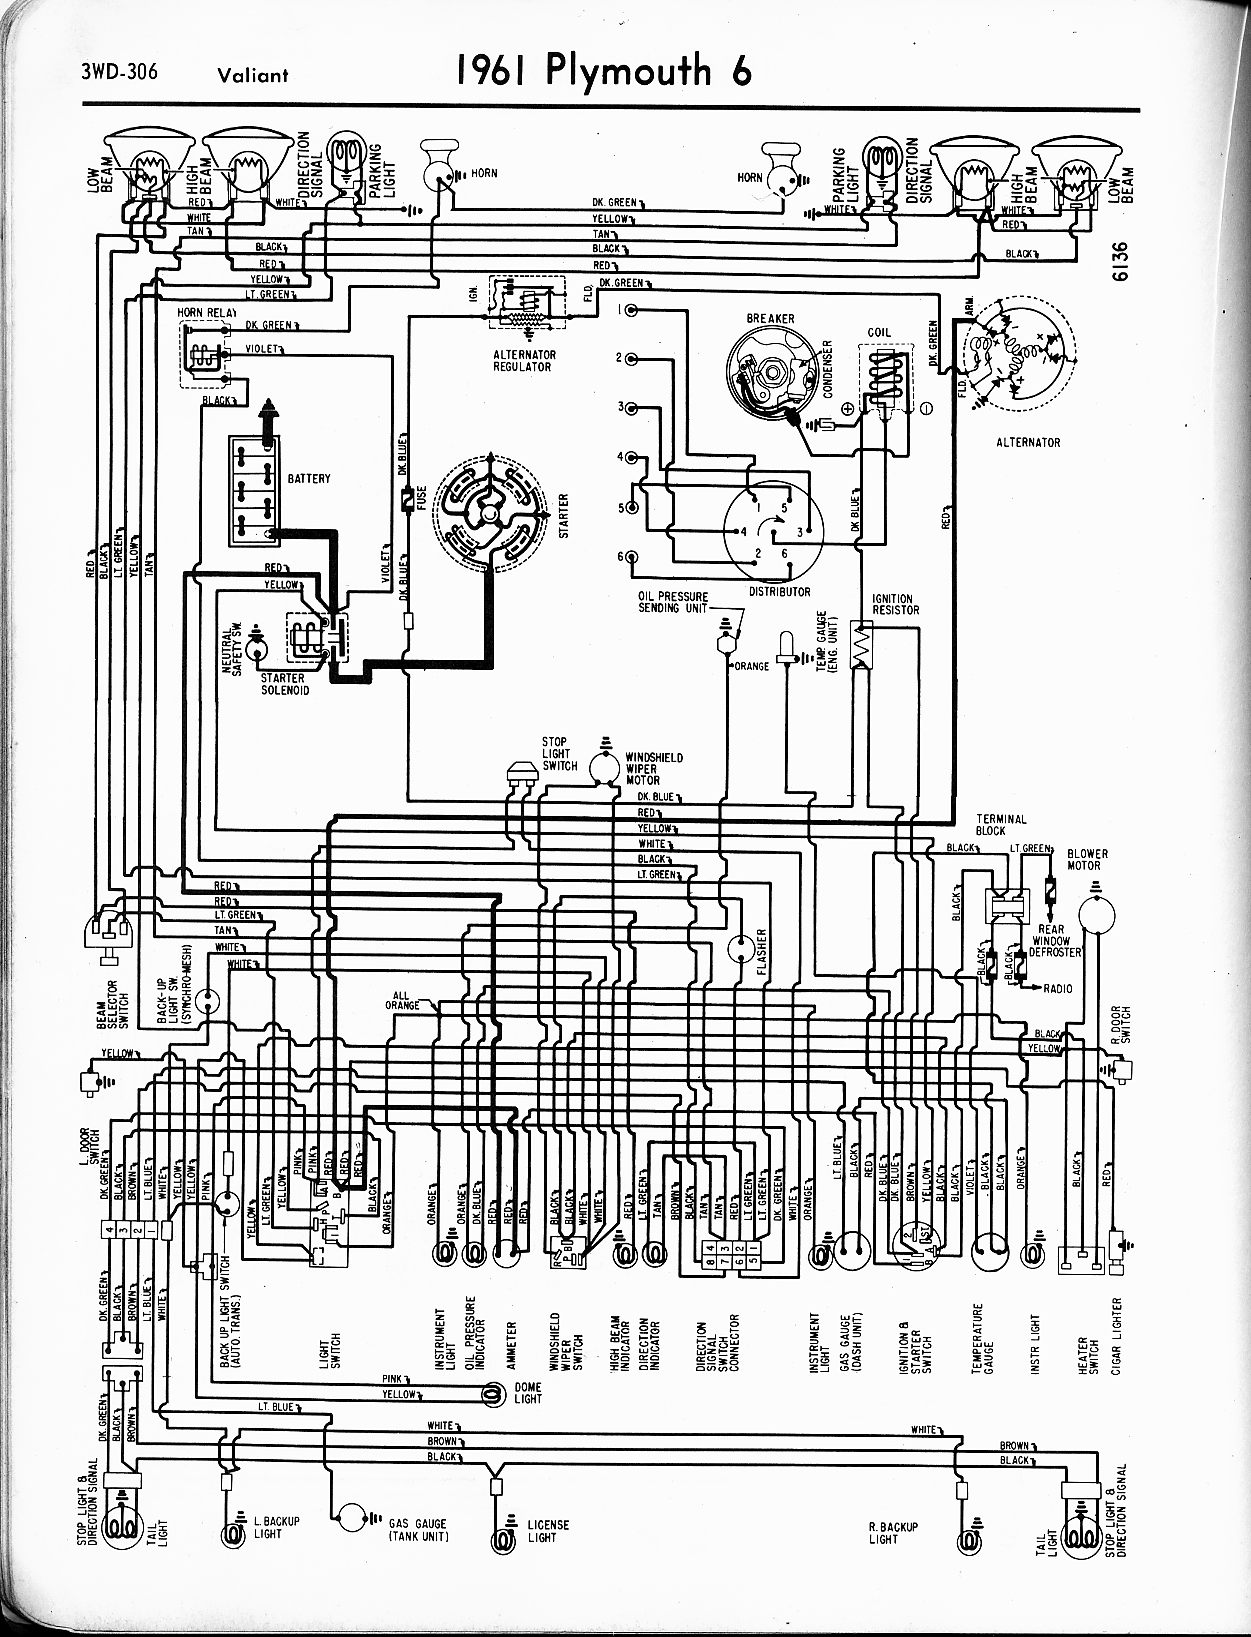 1951 chevrolet wiring diagram schematic 1951 plymouth wiring diagram